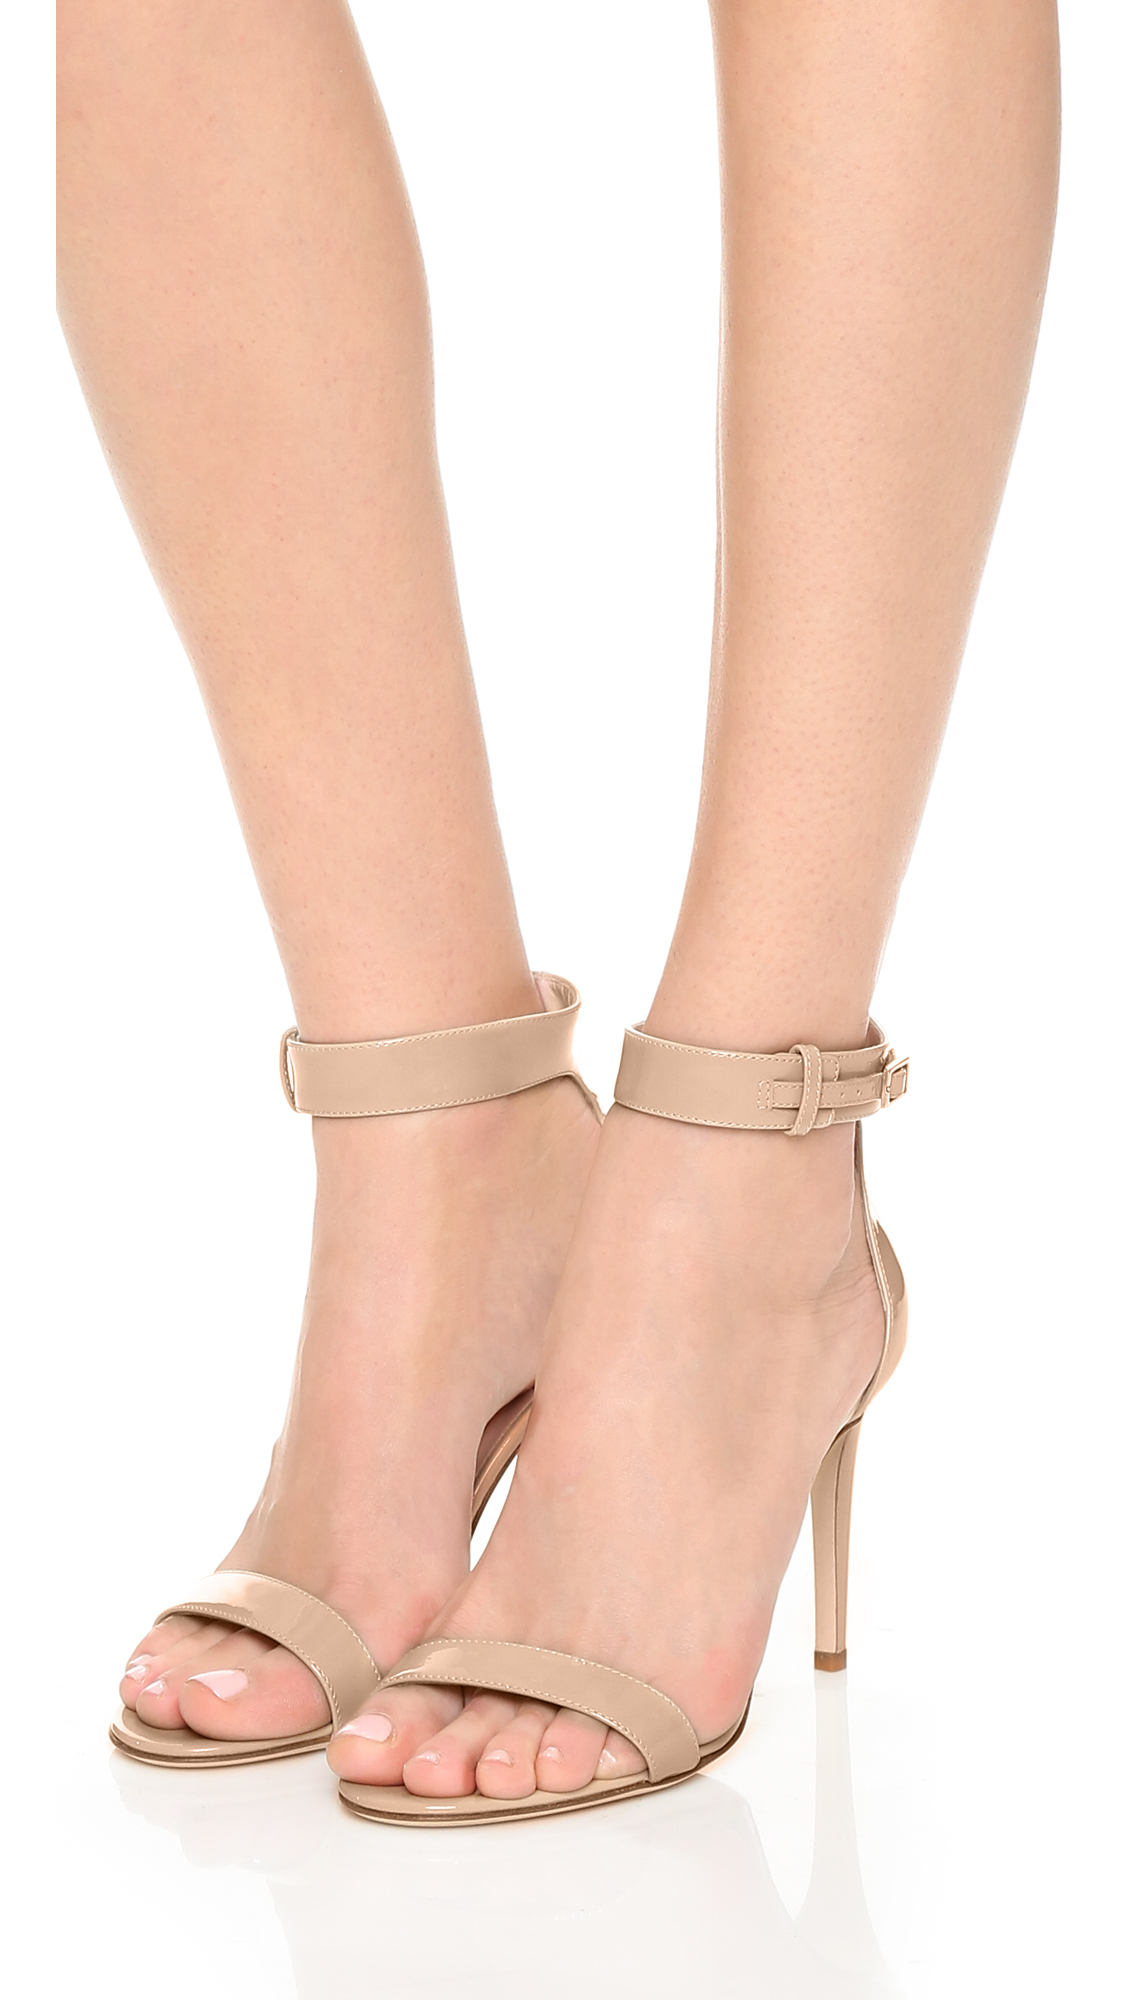 8fa4f32f546 Lyst - Kate Spade Isa Sandals in Natural